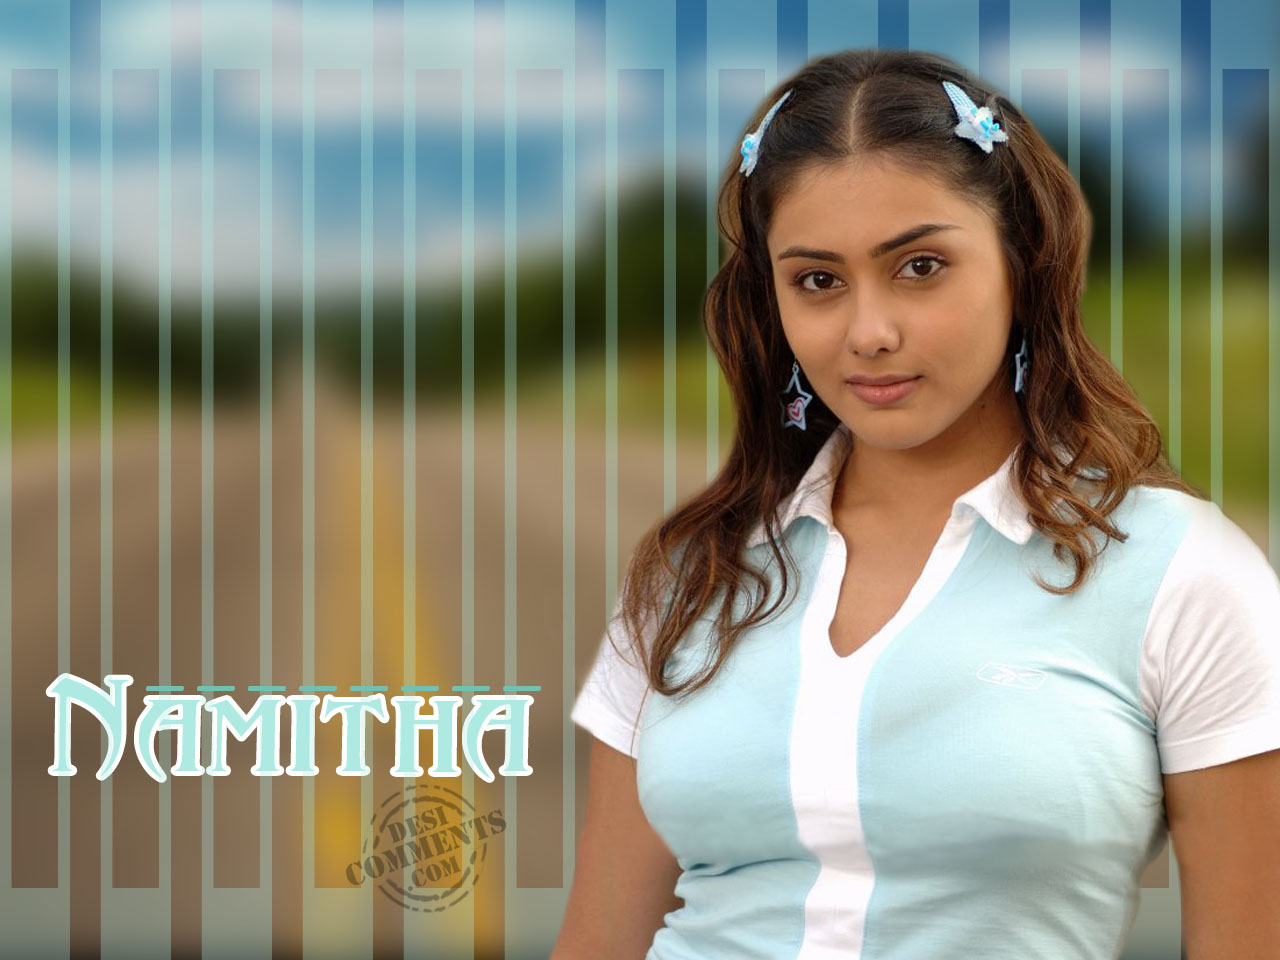 Sad Wallpaper With Quotes In Hindi Namitha Wallpapers South Indian Celebrities